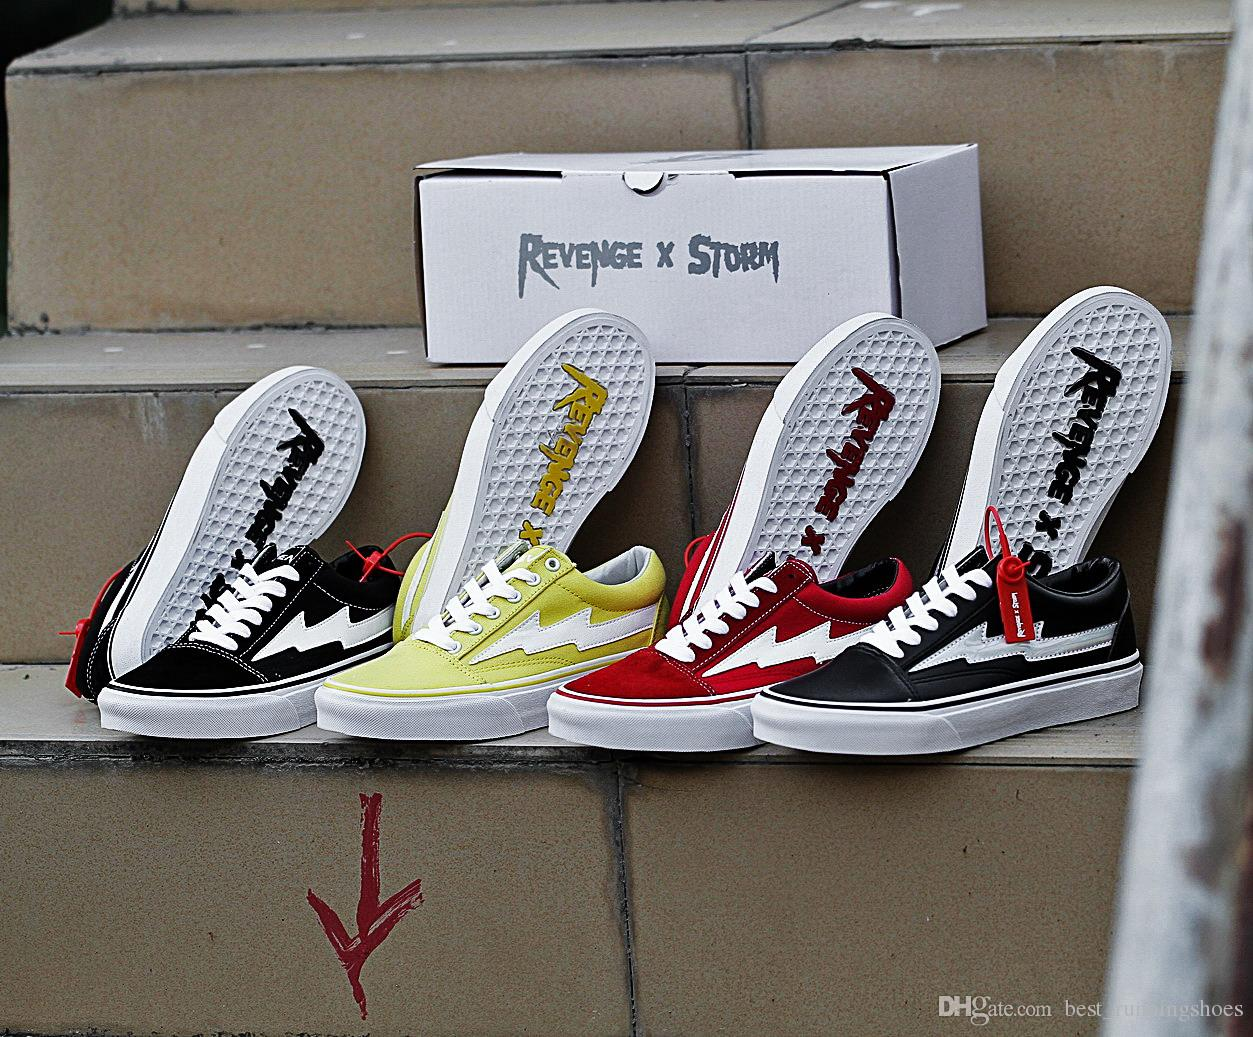 cb32f9c08a6e 2019 REVENGE X STORM Old Skool Skateboard Revenge Of The Storm Canvas  Casual Skate Shoes Joint Lightning KANYE Sneakers Trainers Size 36 44 From  ...